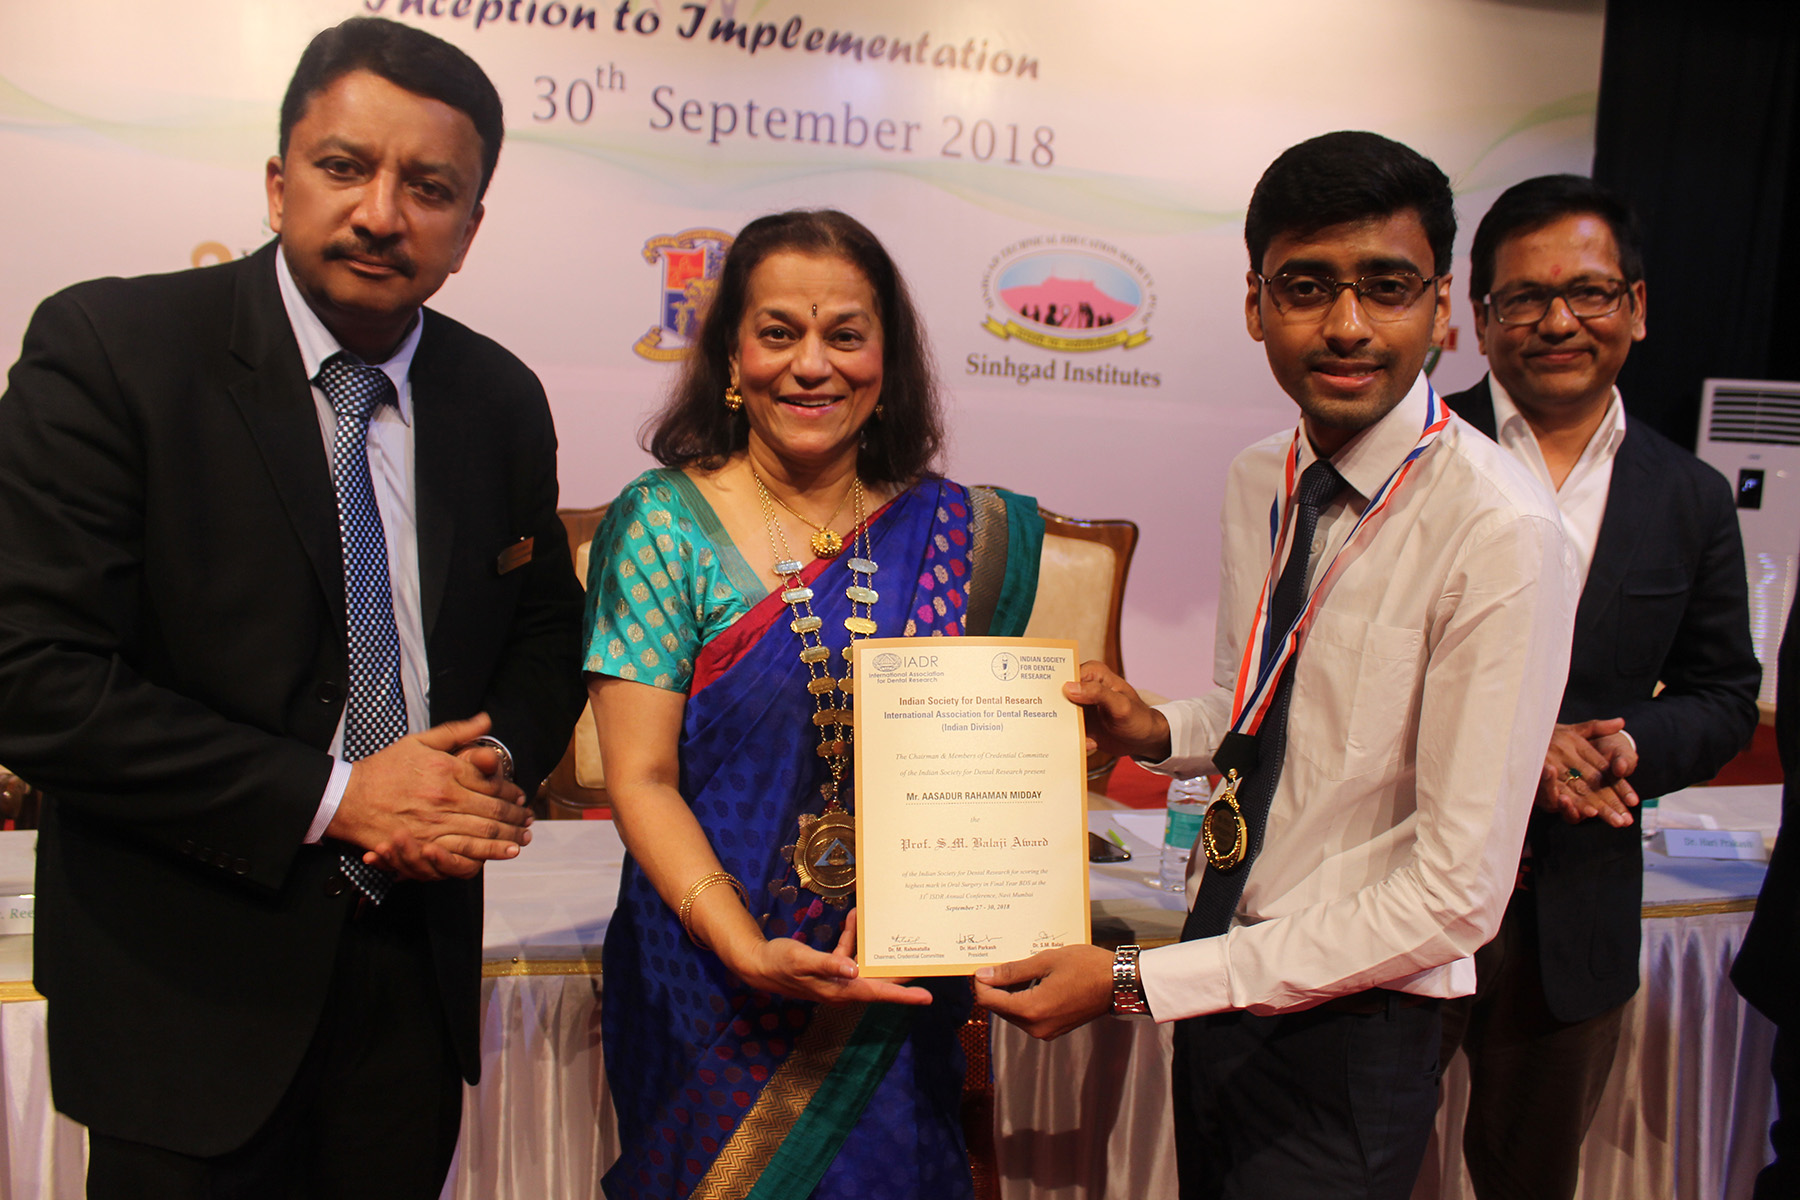 A certificate of appreciation presented to a student delegate